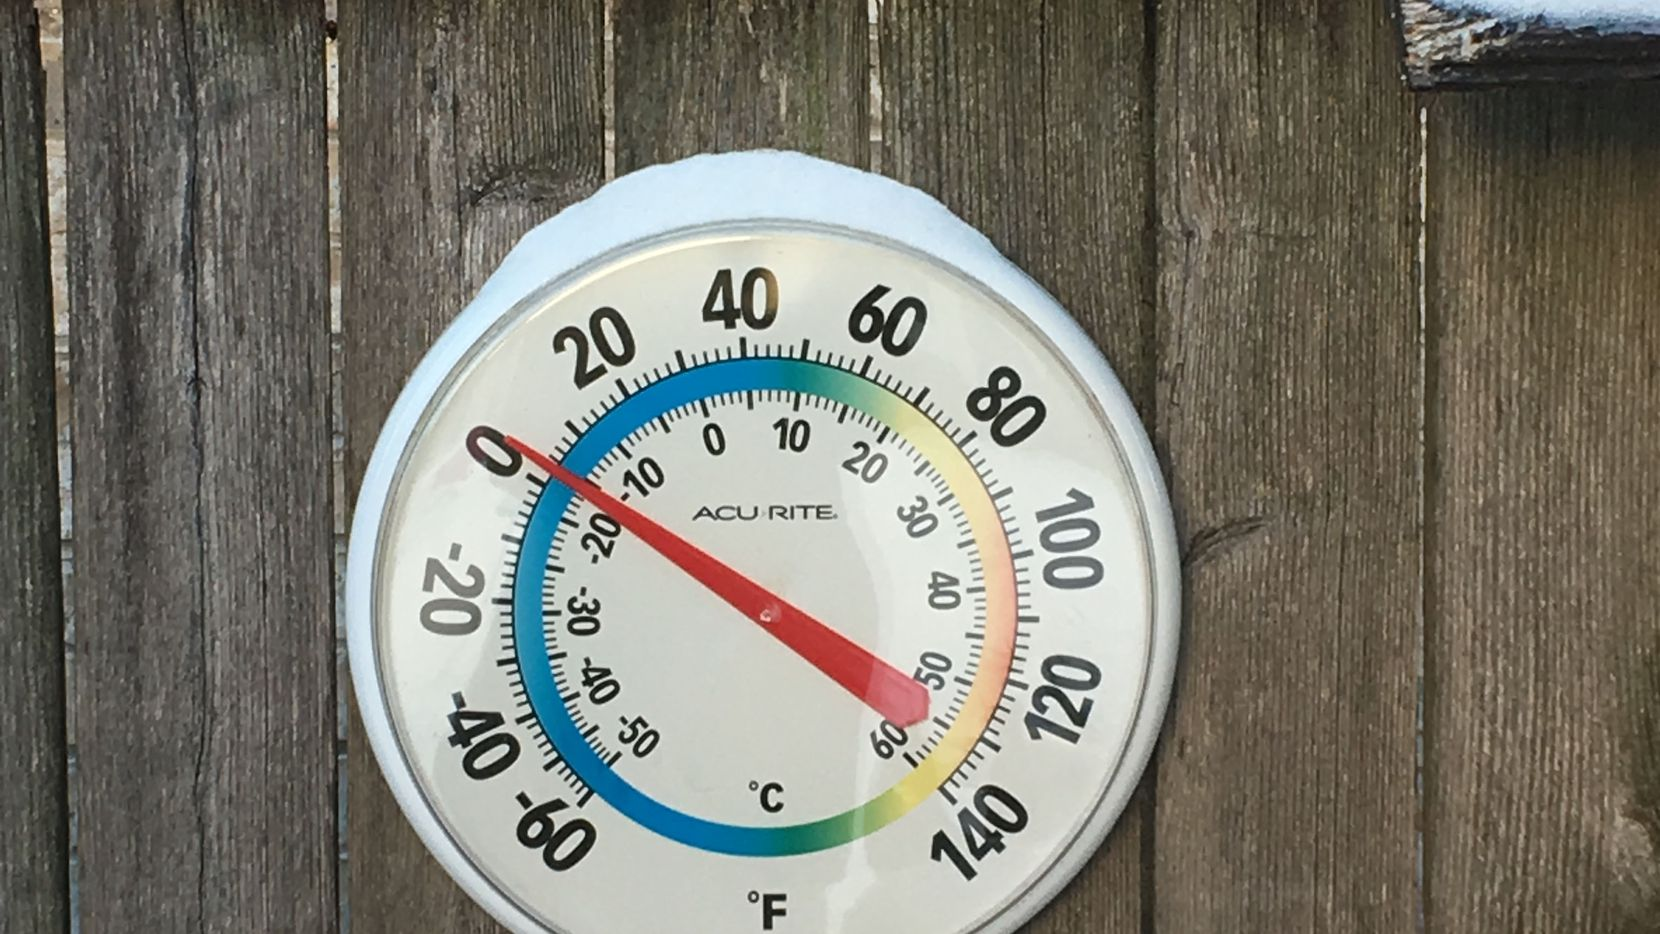 The outdoor temperature hovered close to zero degrees F on Tuesday in an East Dallas backyard, as unprecedented and dangrous freezing cold weather gripped North Texas.